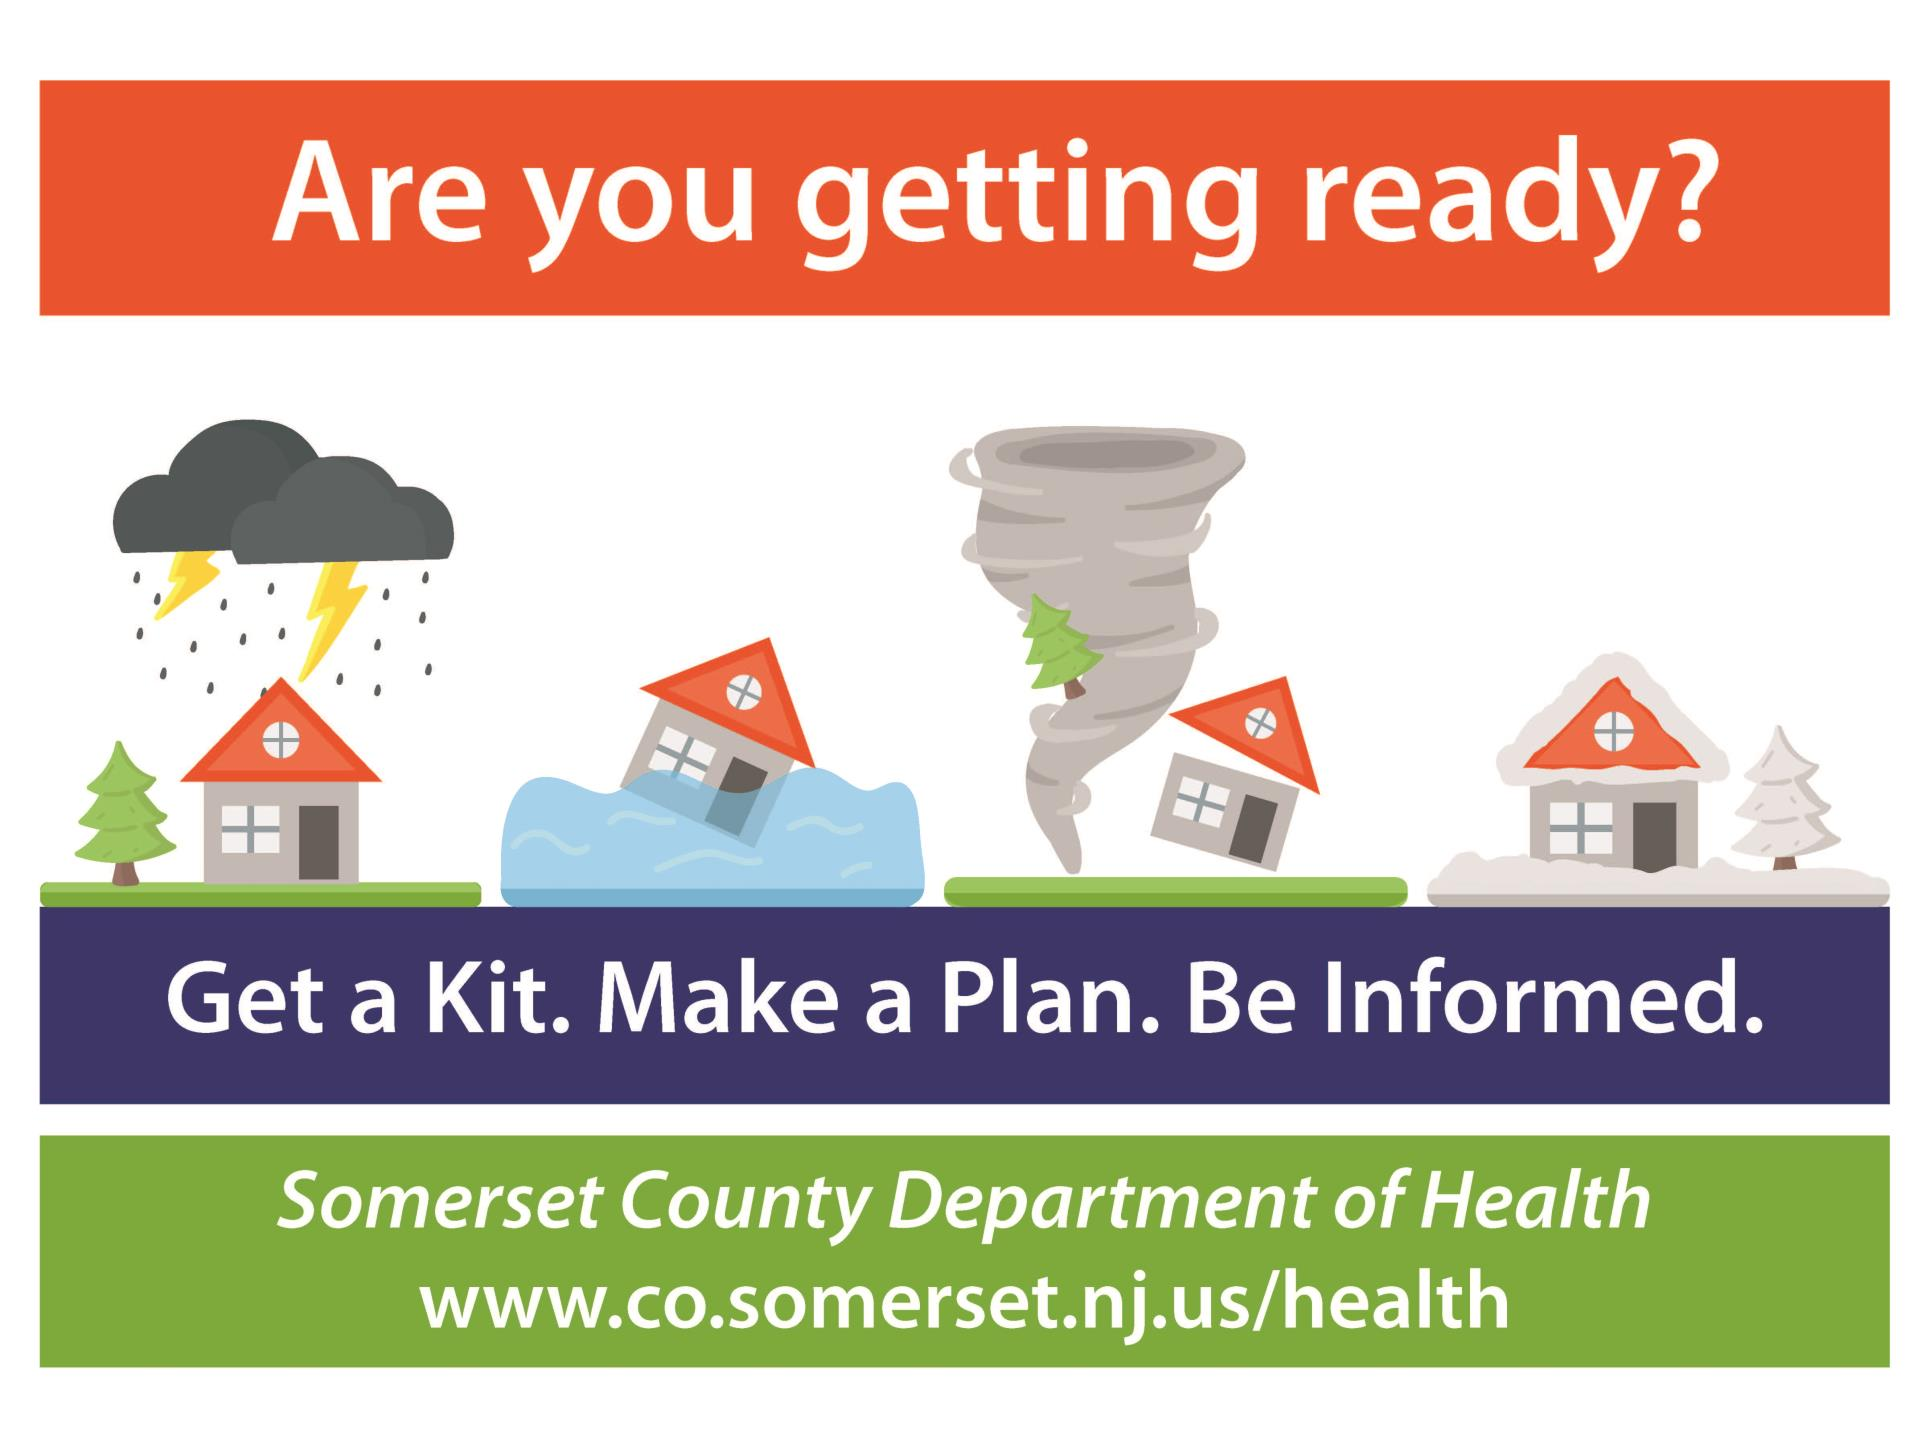 Are you Getting Ready Preparedness Poster